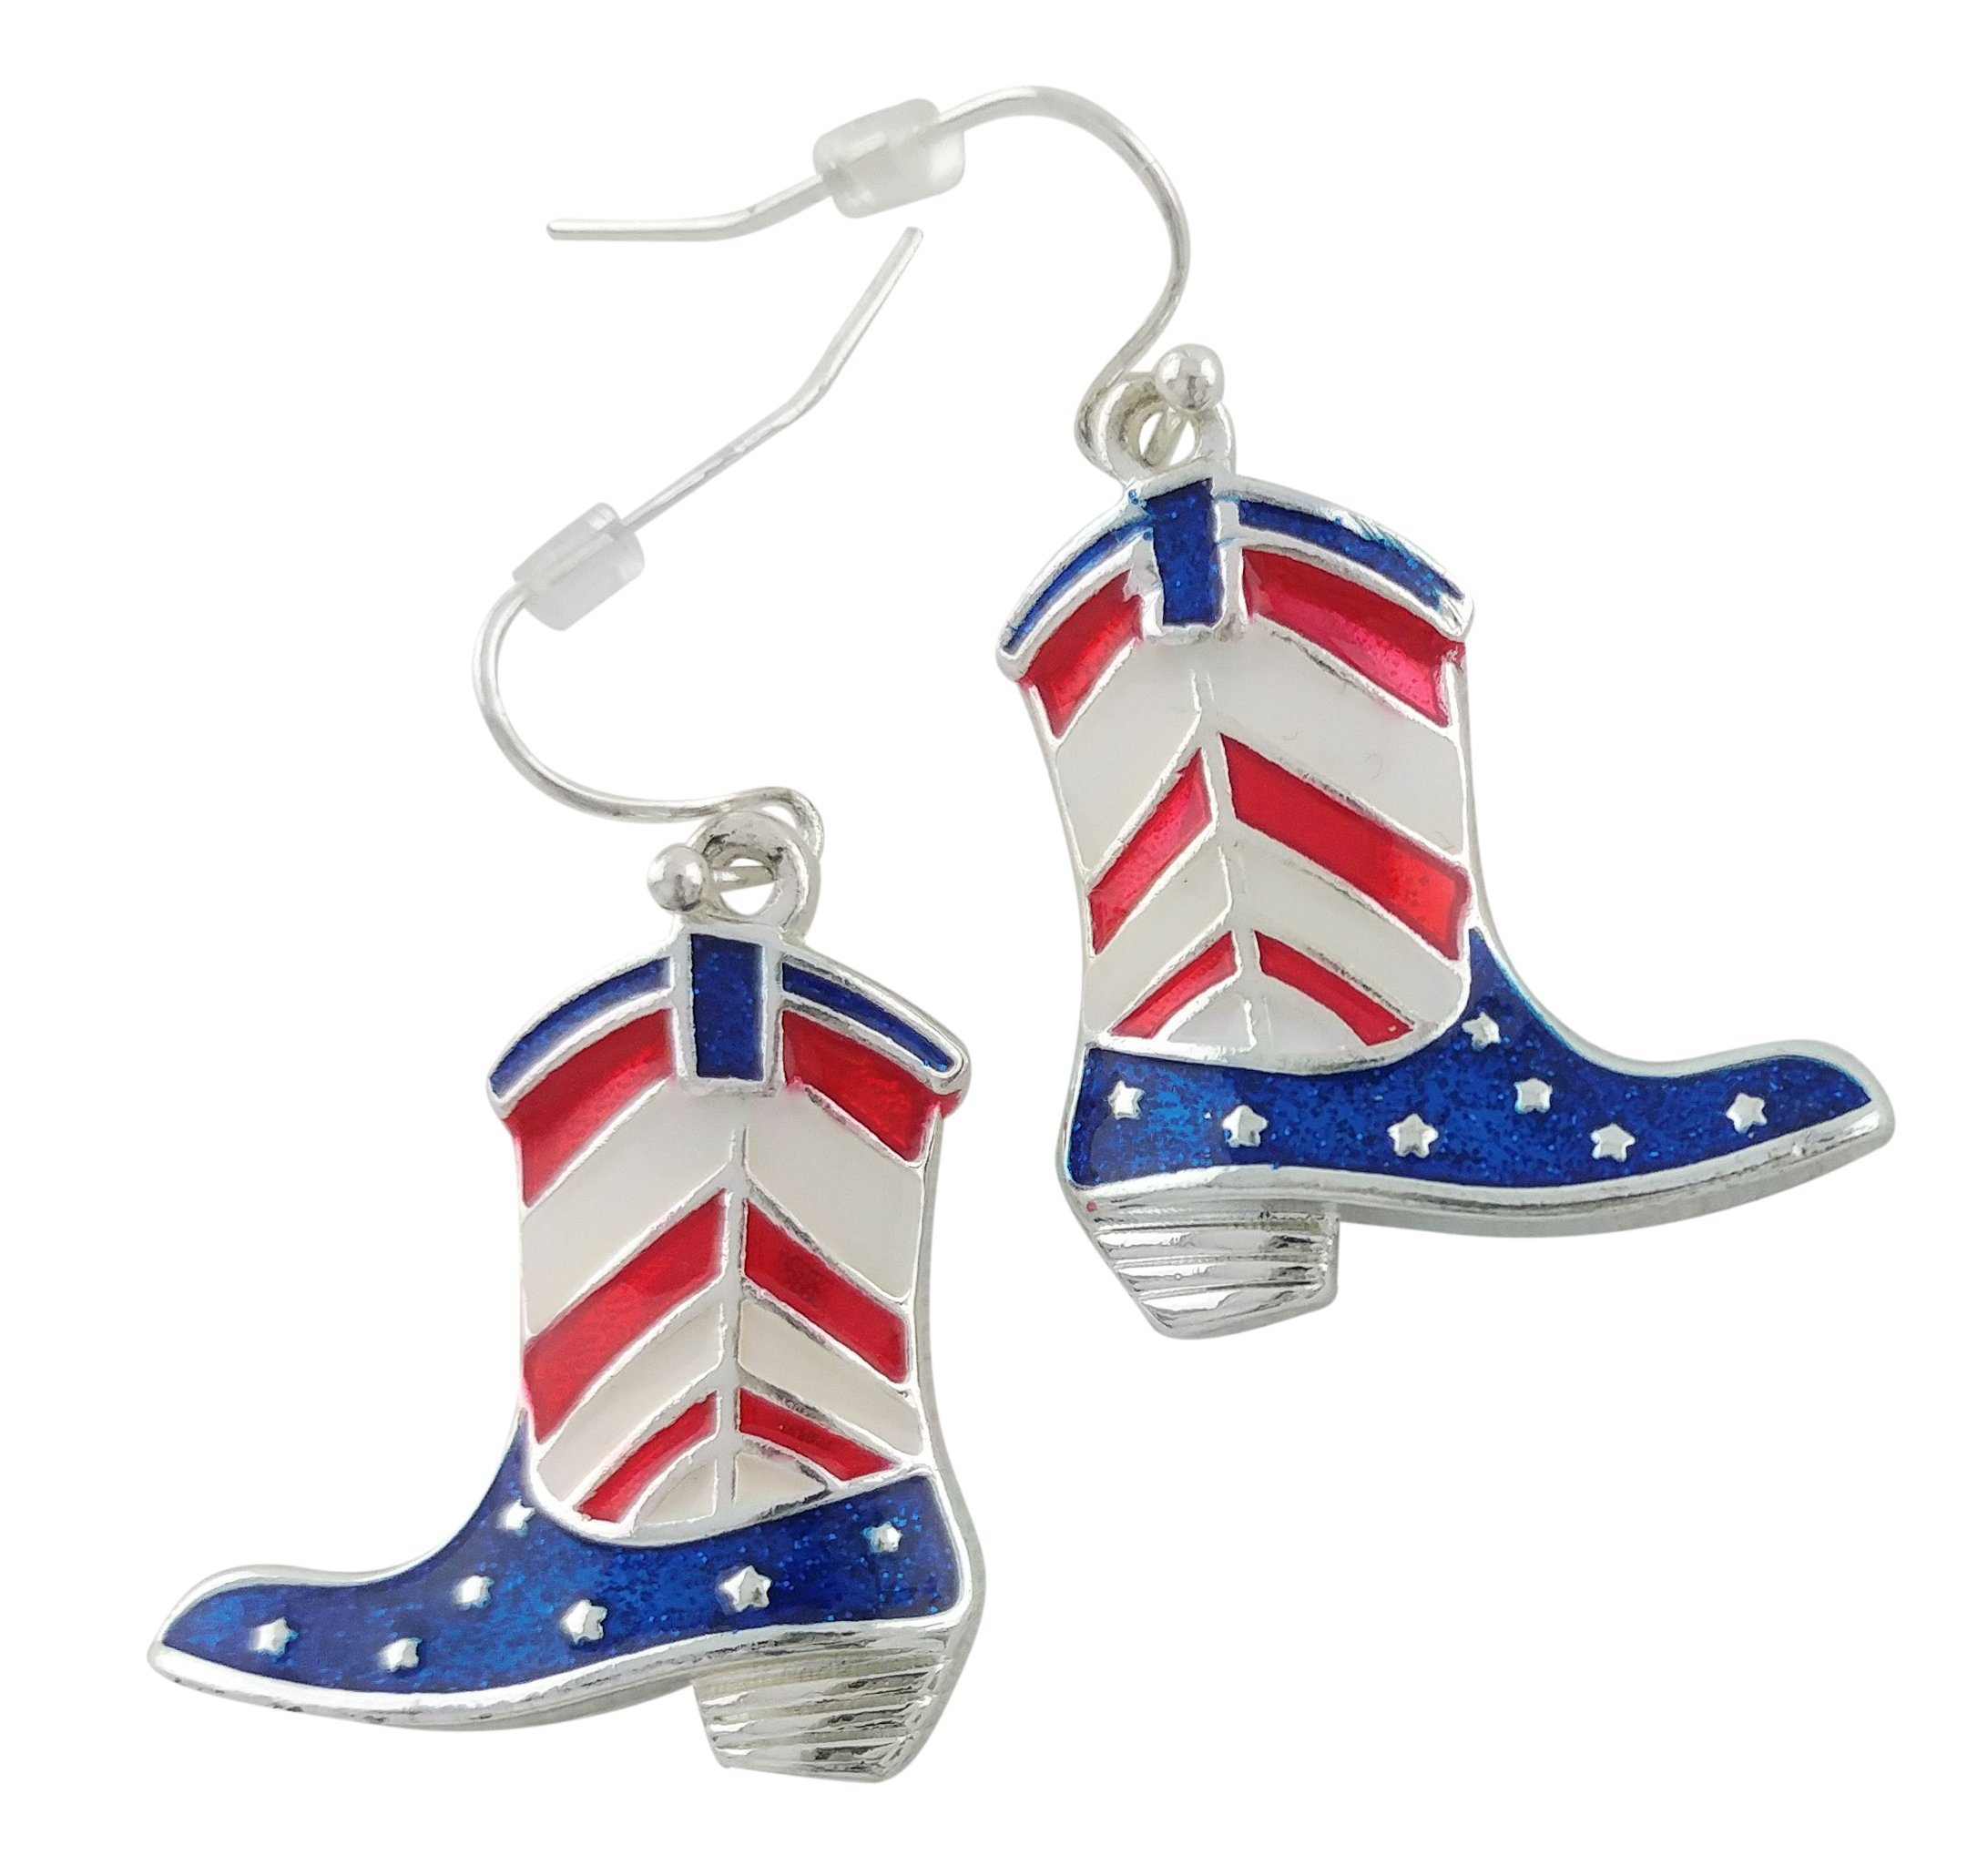 Western Style Patriotic Red, White and Blue Boot Earrings